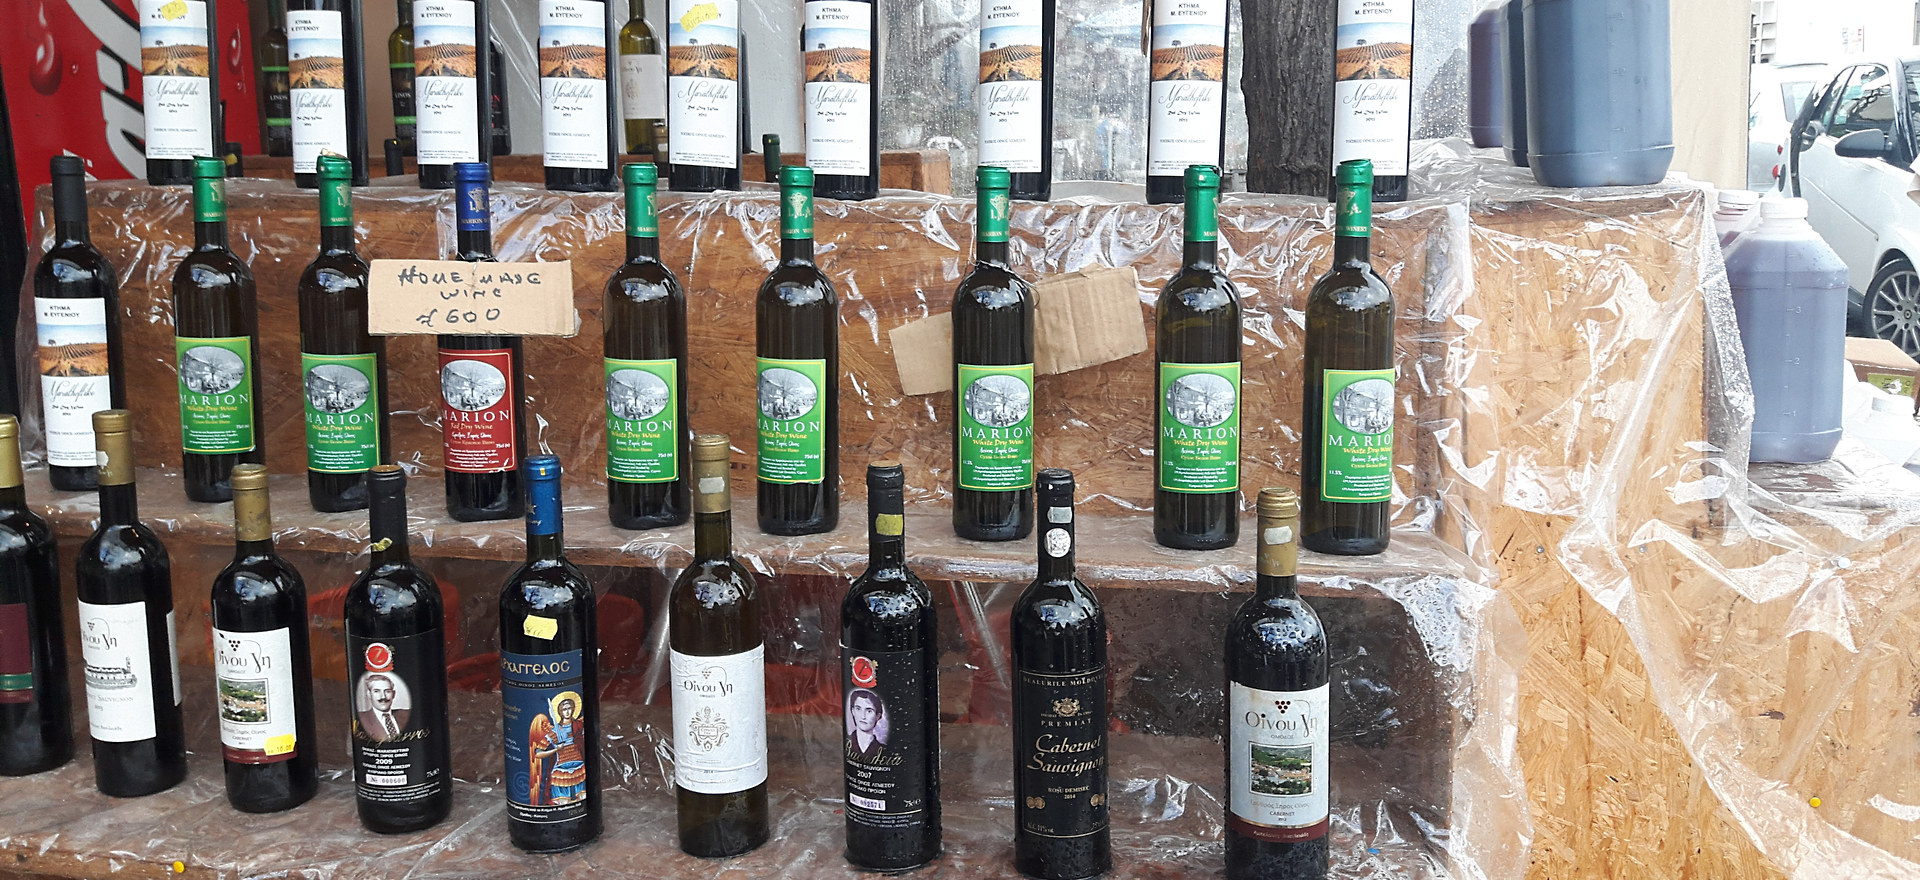 Cypriot wine production